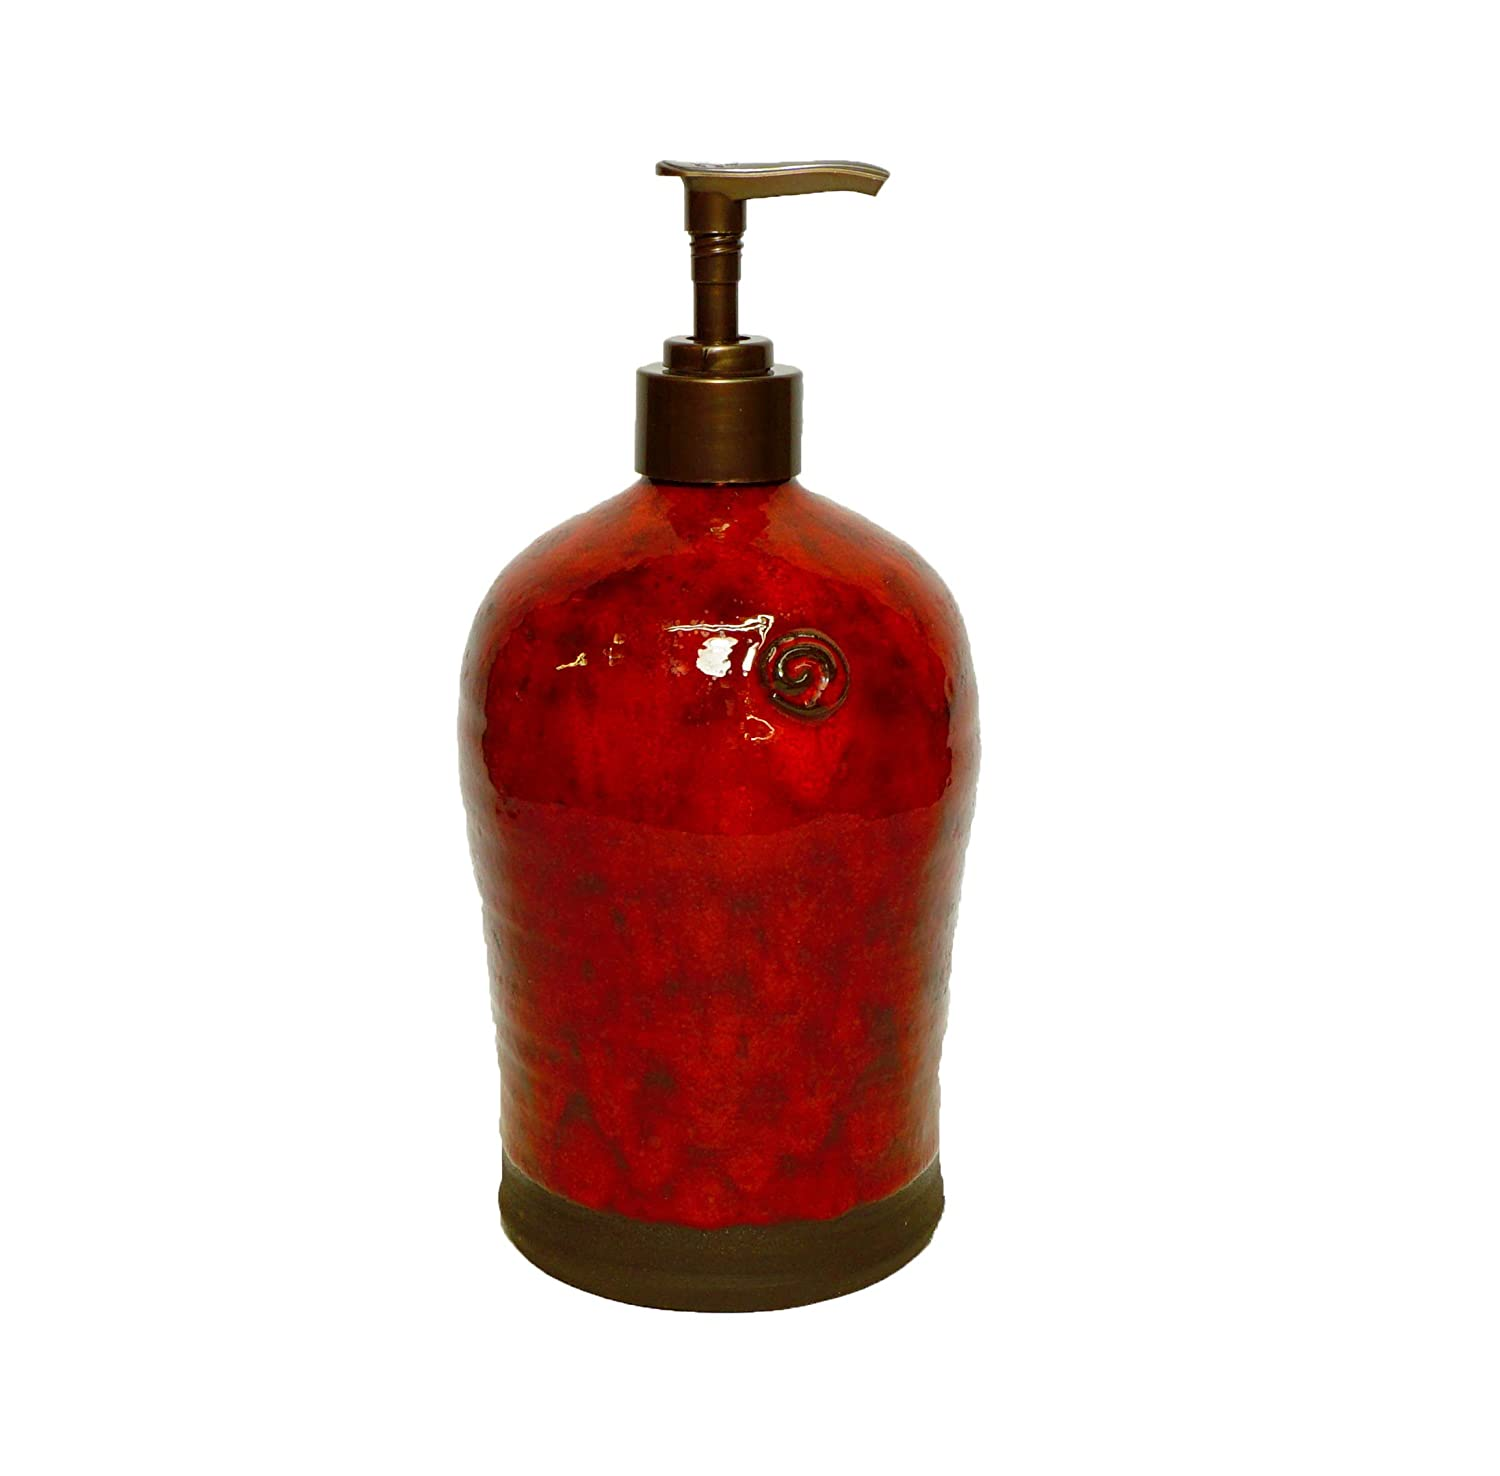 Amazon Com Ceramic Soap Dispenser Deep Red Liquid Soap Bottle Kitchen Soap Pump Handmade Soap Dispenser Rustic Pottery Moms Gift Handmade